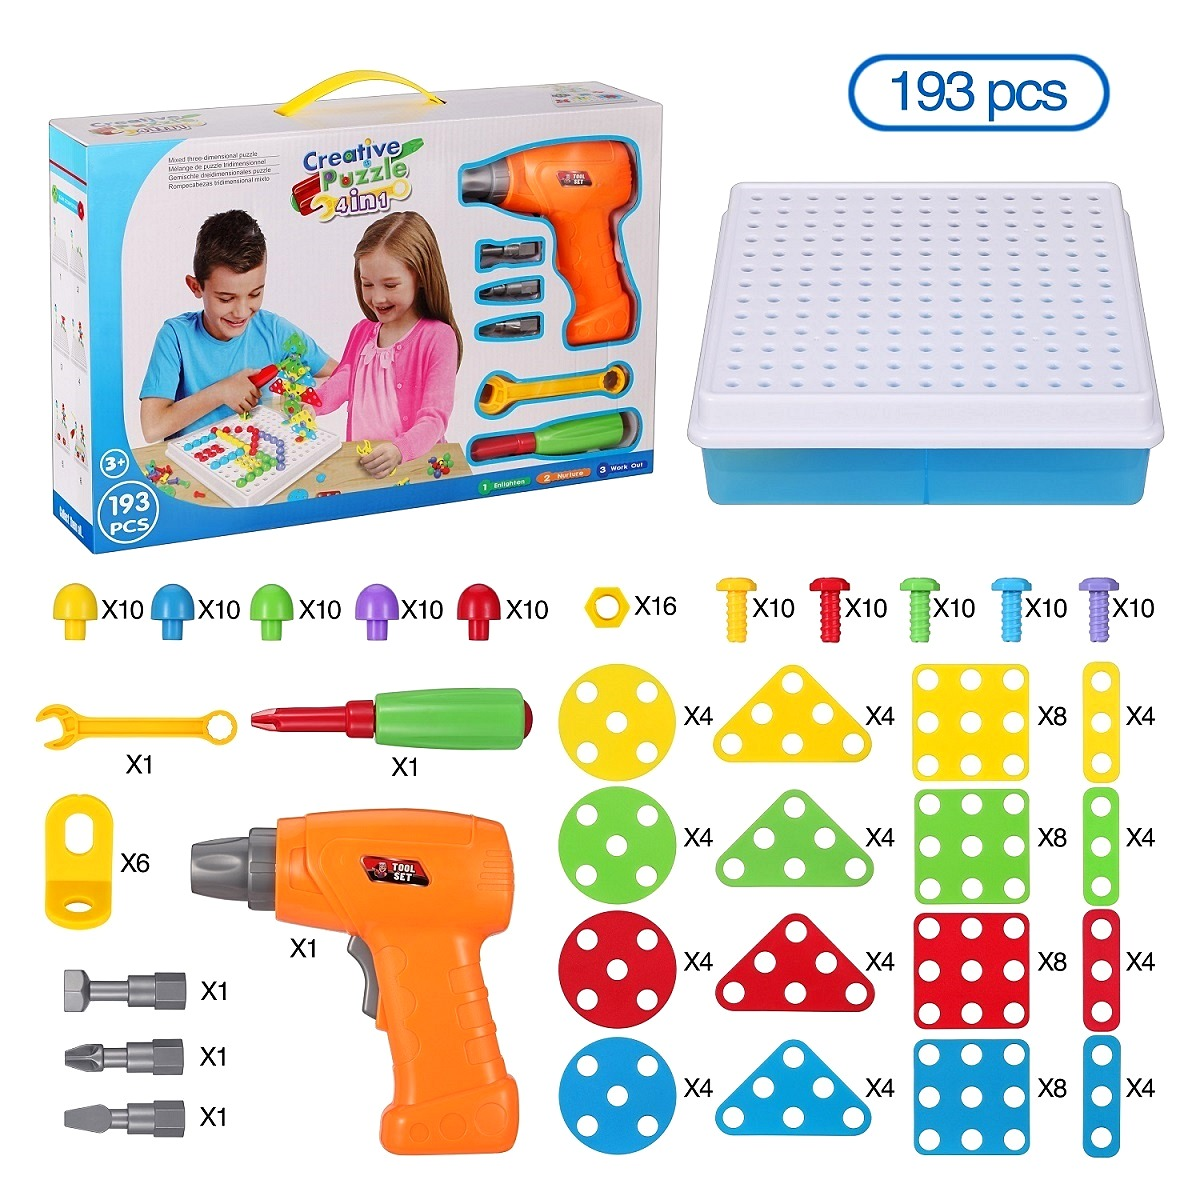 Kids Toys Drill Pretend Play Creative Educational Games Mosaic Design Building Toys Tool Set for Boy 3 Years Up Toy Dropshipping winnie the pooh iphone case